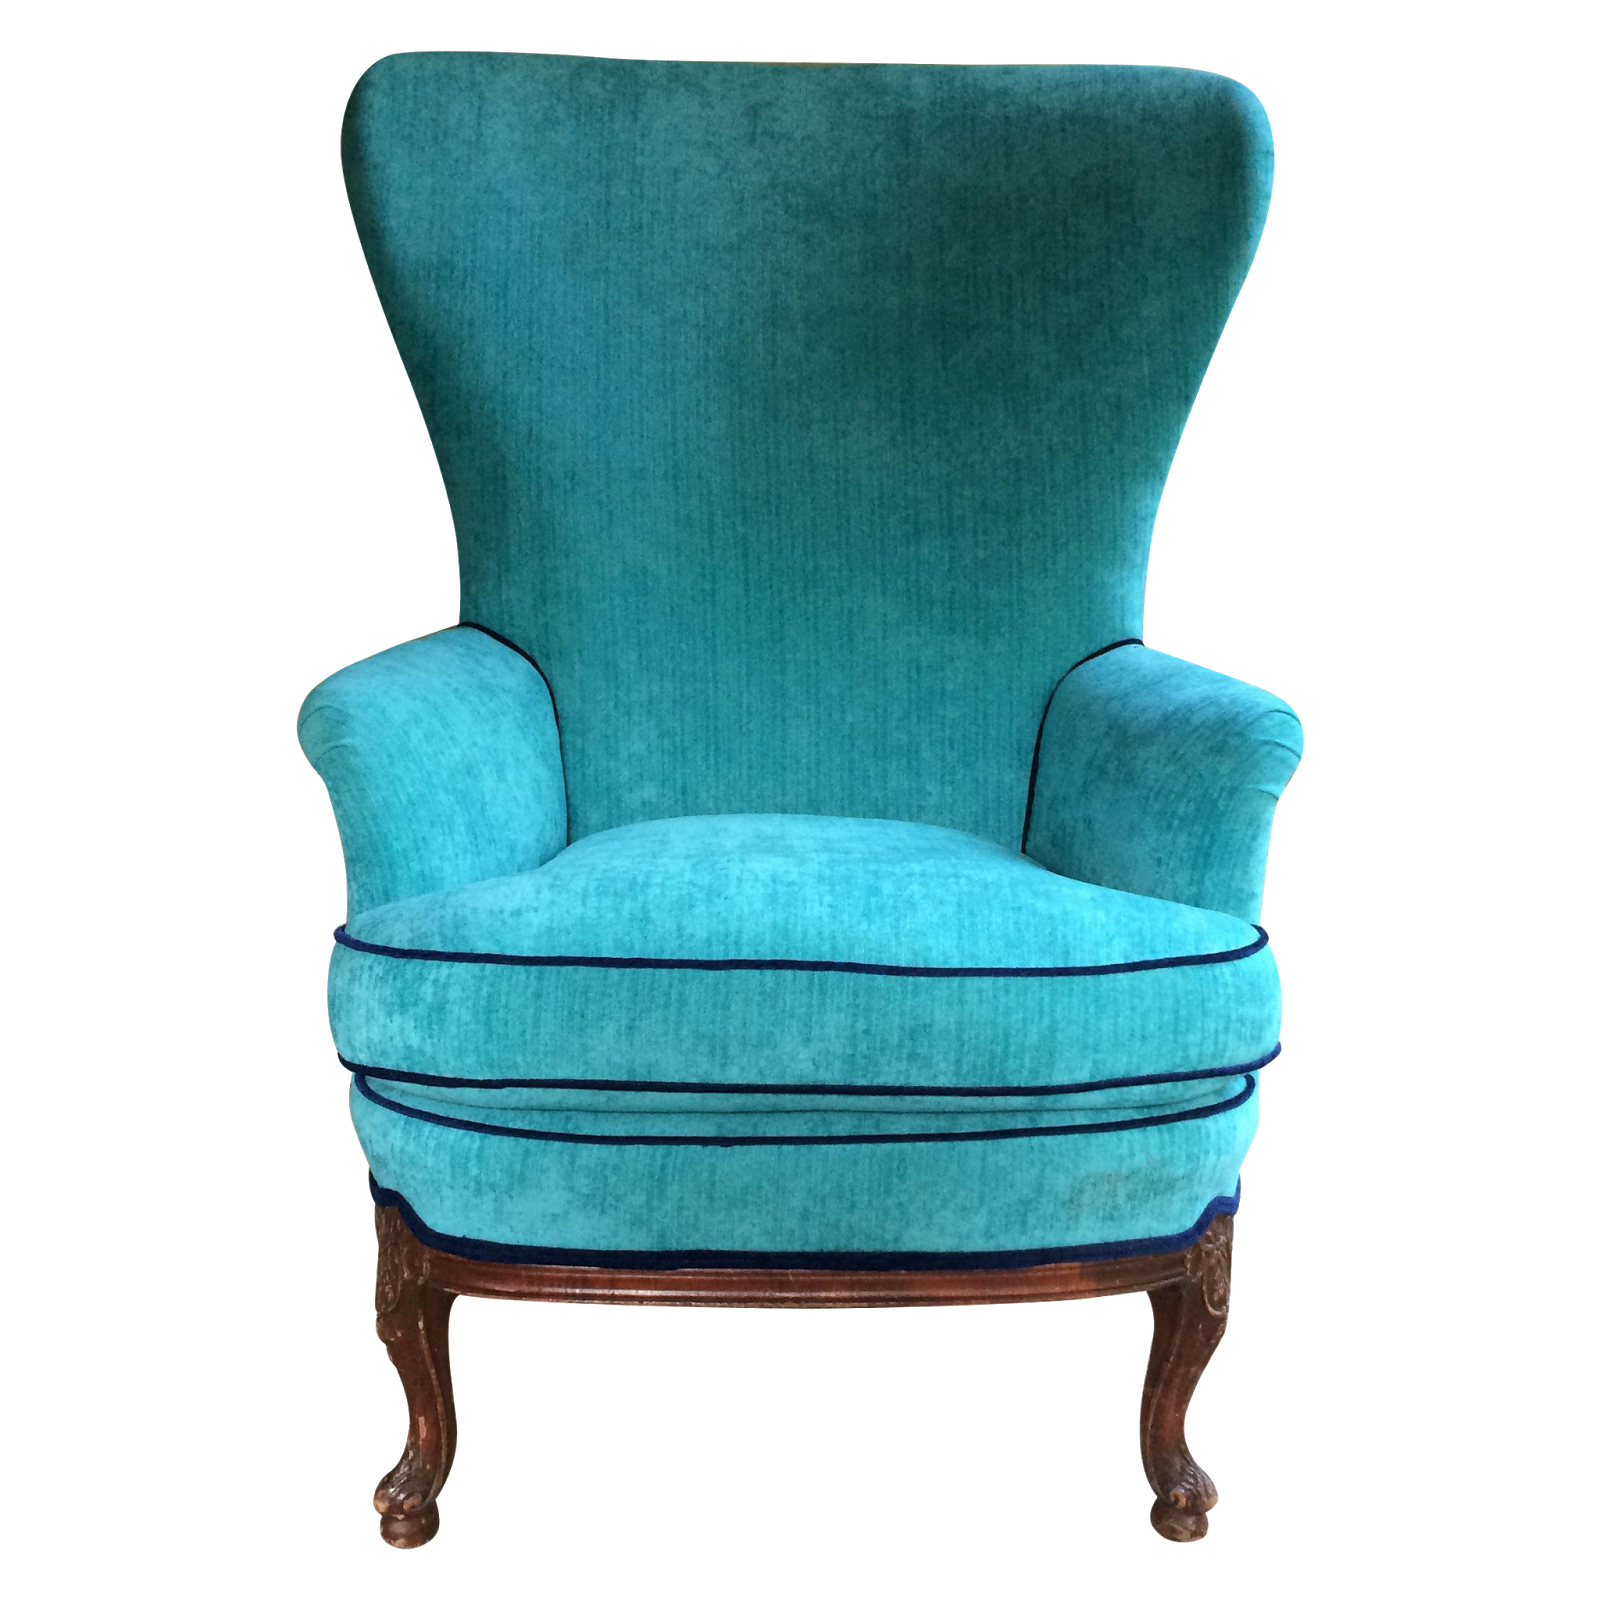 turquoise wingback chair jerry johnson the best in vintage inspired designs chairish